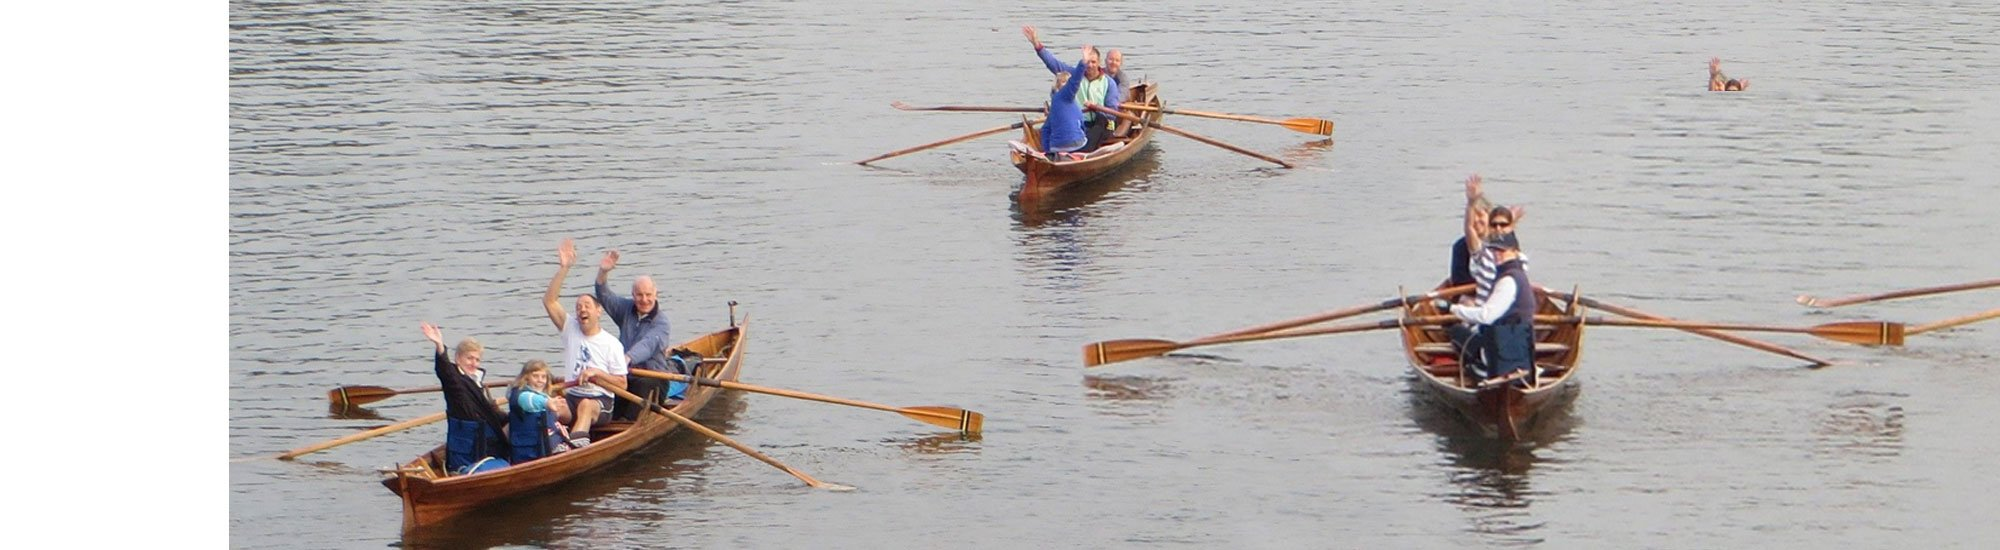 skiffing meanders from Dittons Skiff and Punting Club